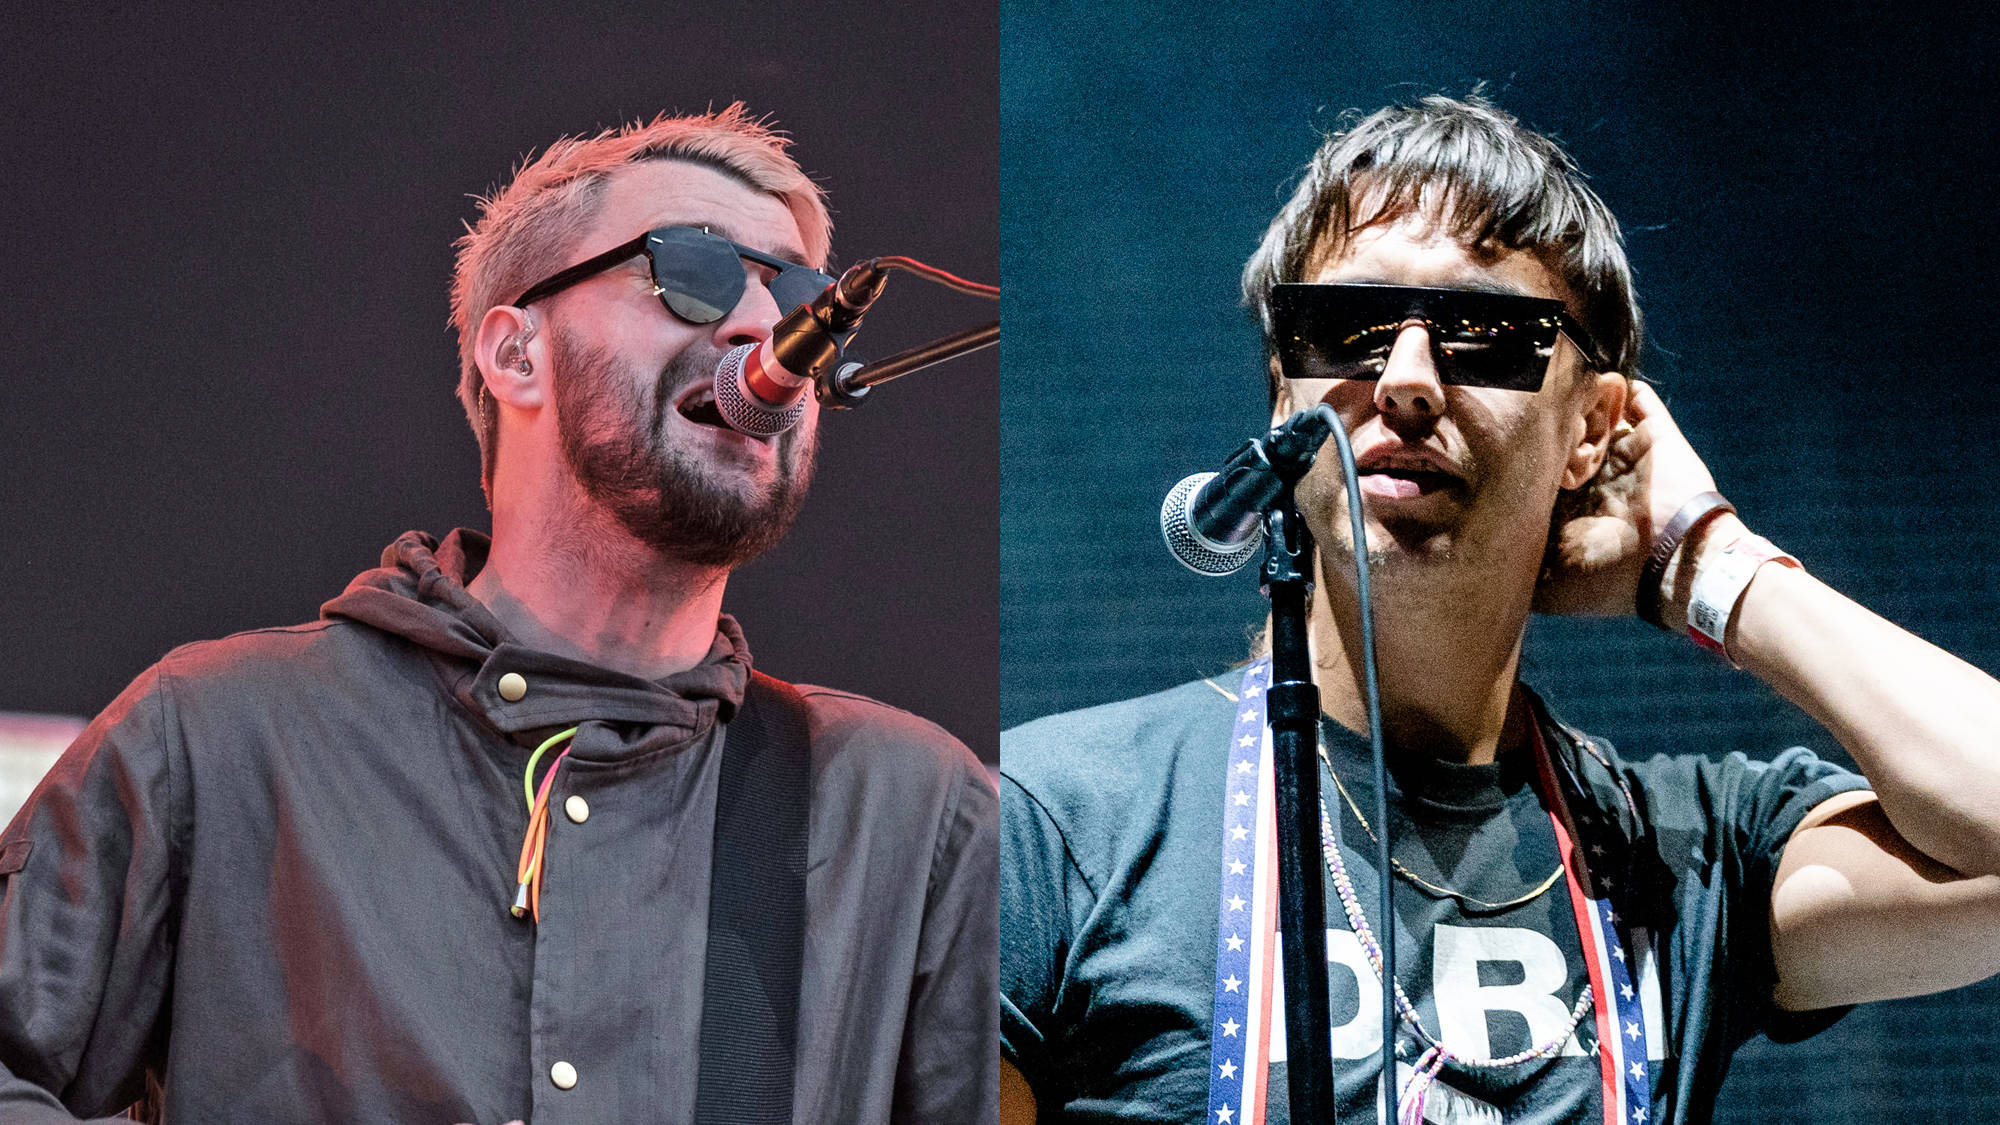 Liam Fray: The Strokes live brought a tear to my eye